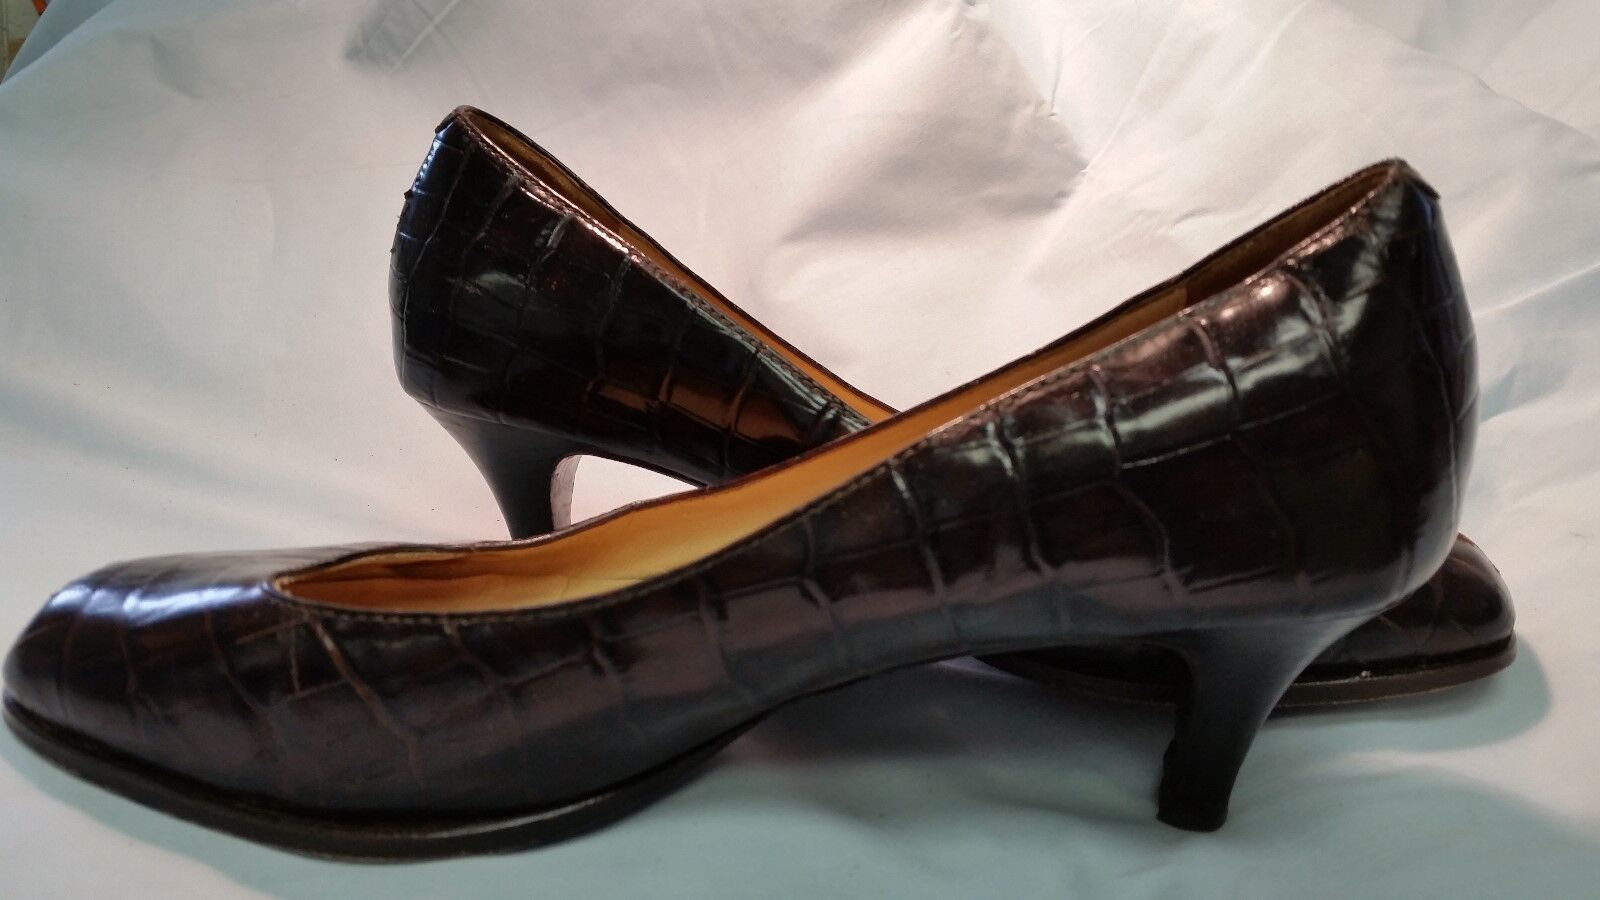 COLE HAAN Brown Size 7.5 7.5 Size Leather Low Heel Pumps Shoes 7 M 6f73fb